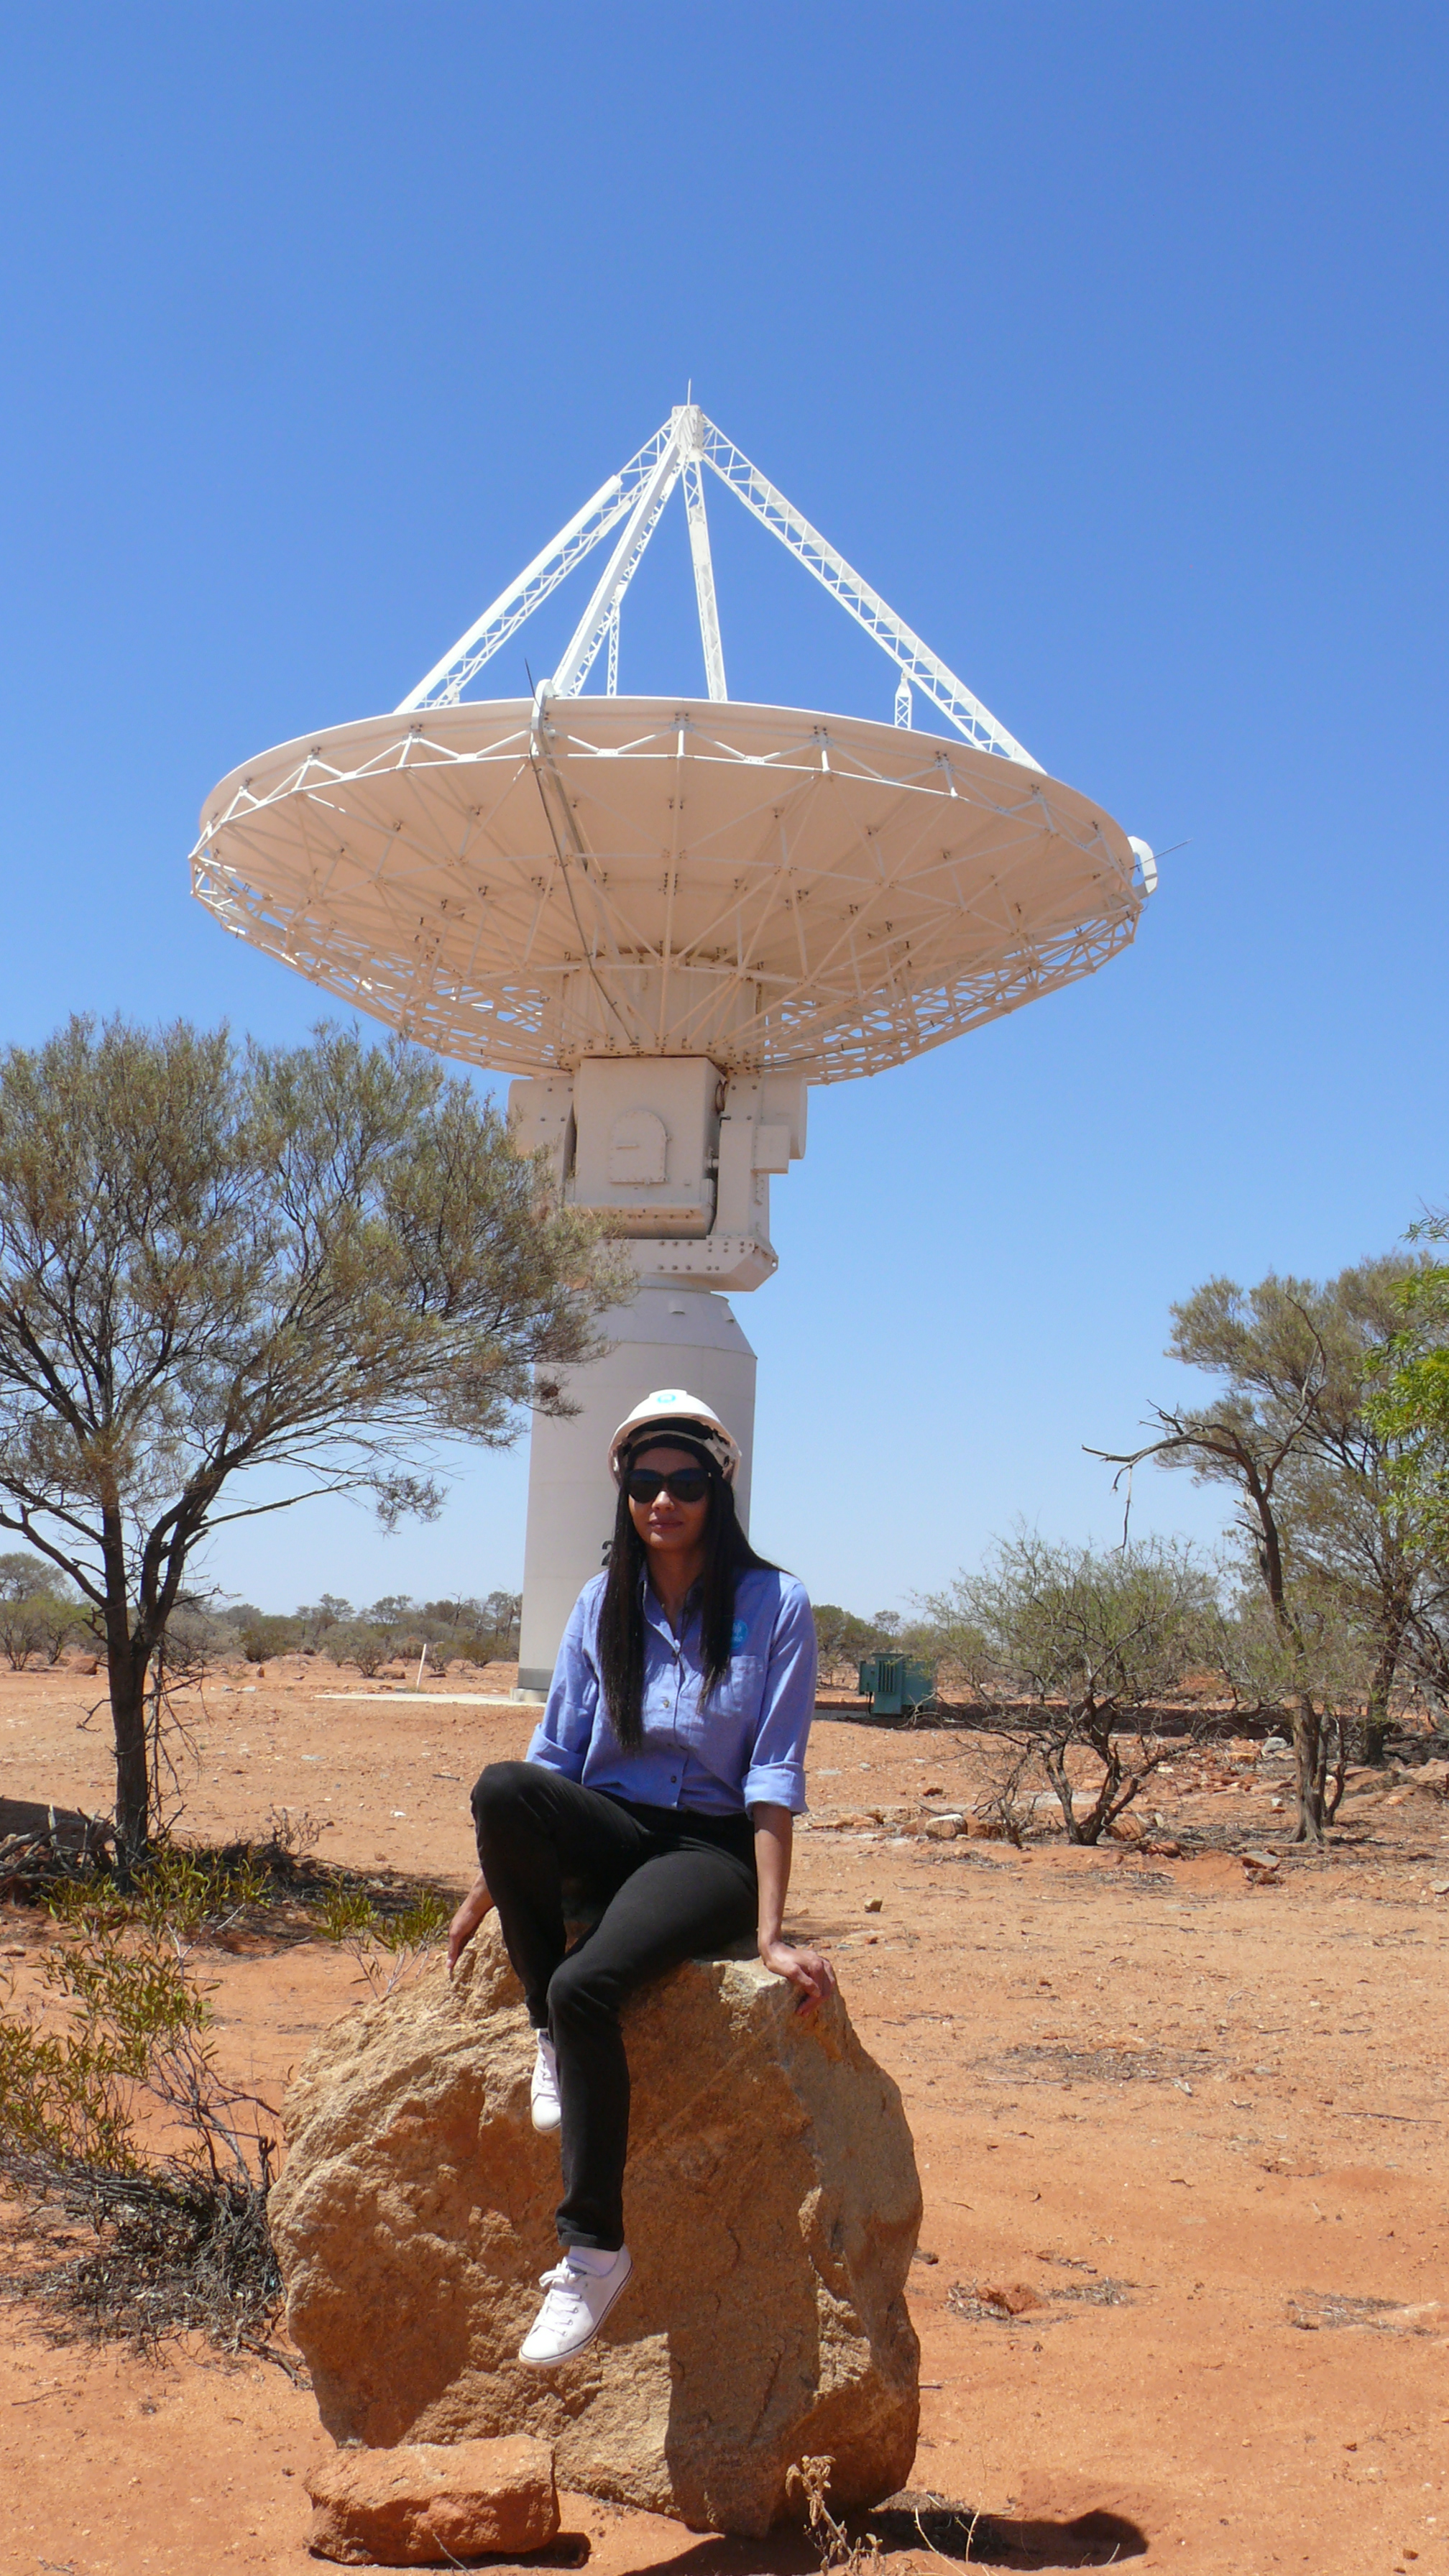 Jayde Clayton enjoying the sun in front of the ASKAP telecsope